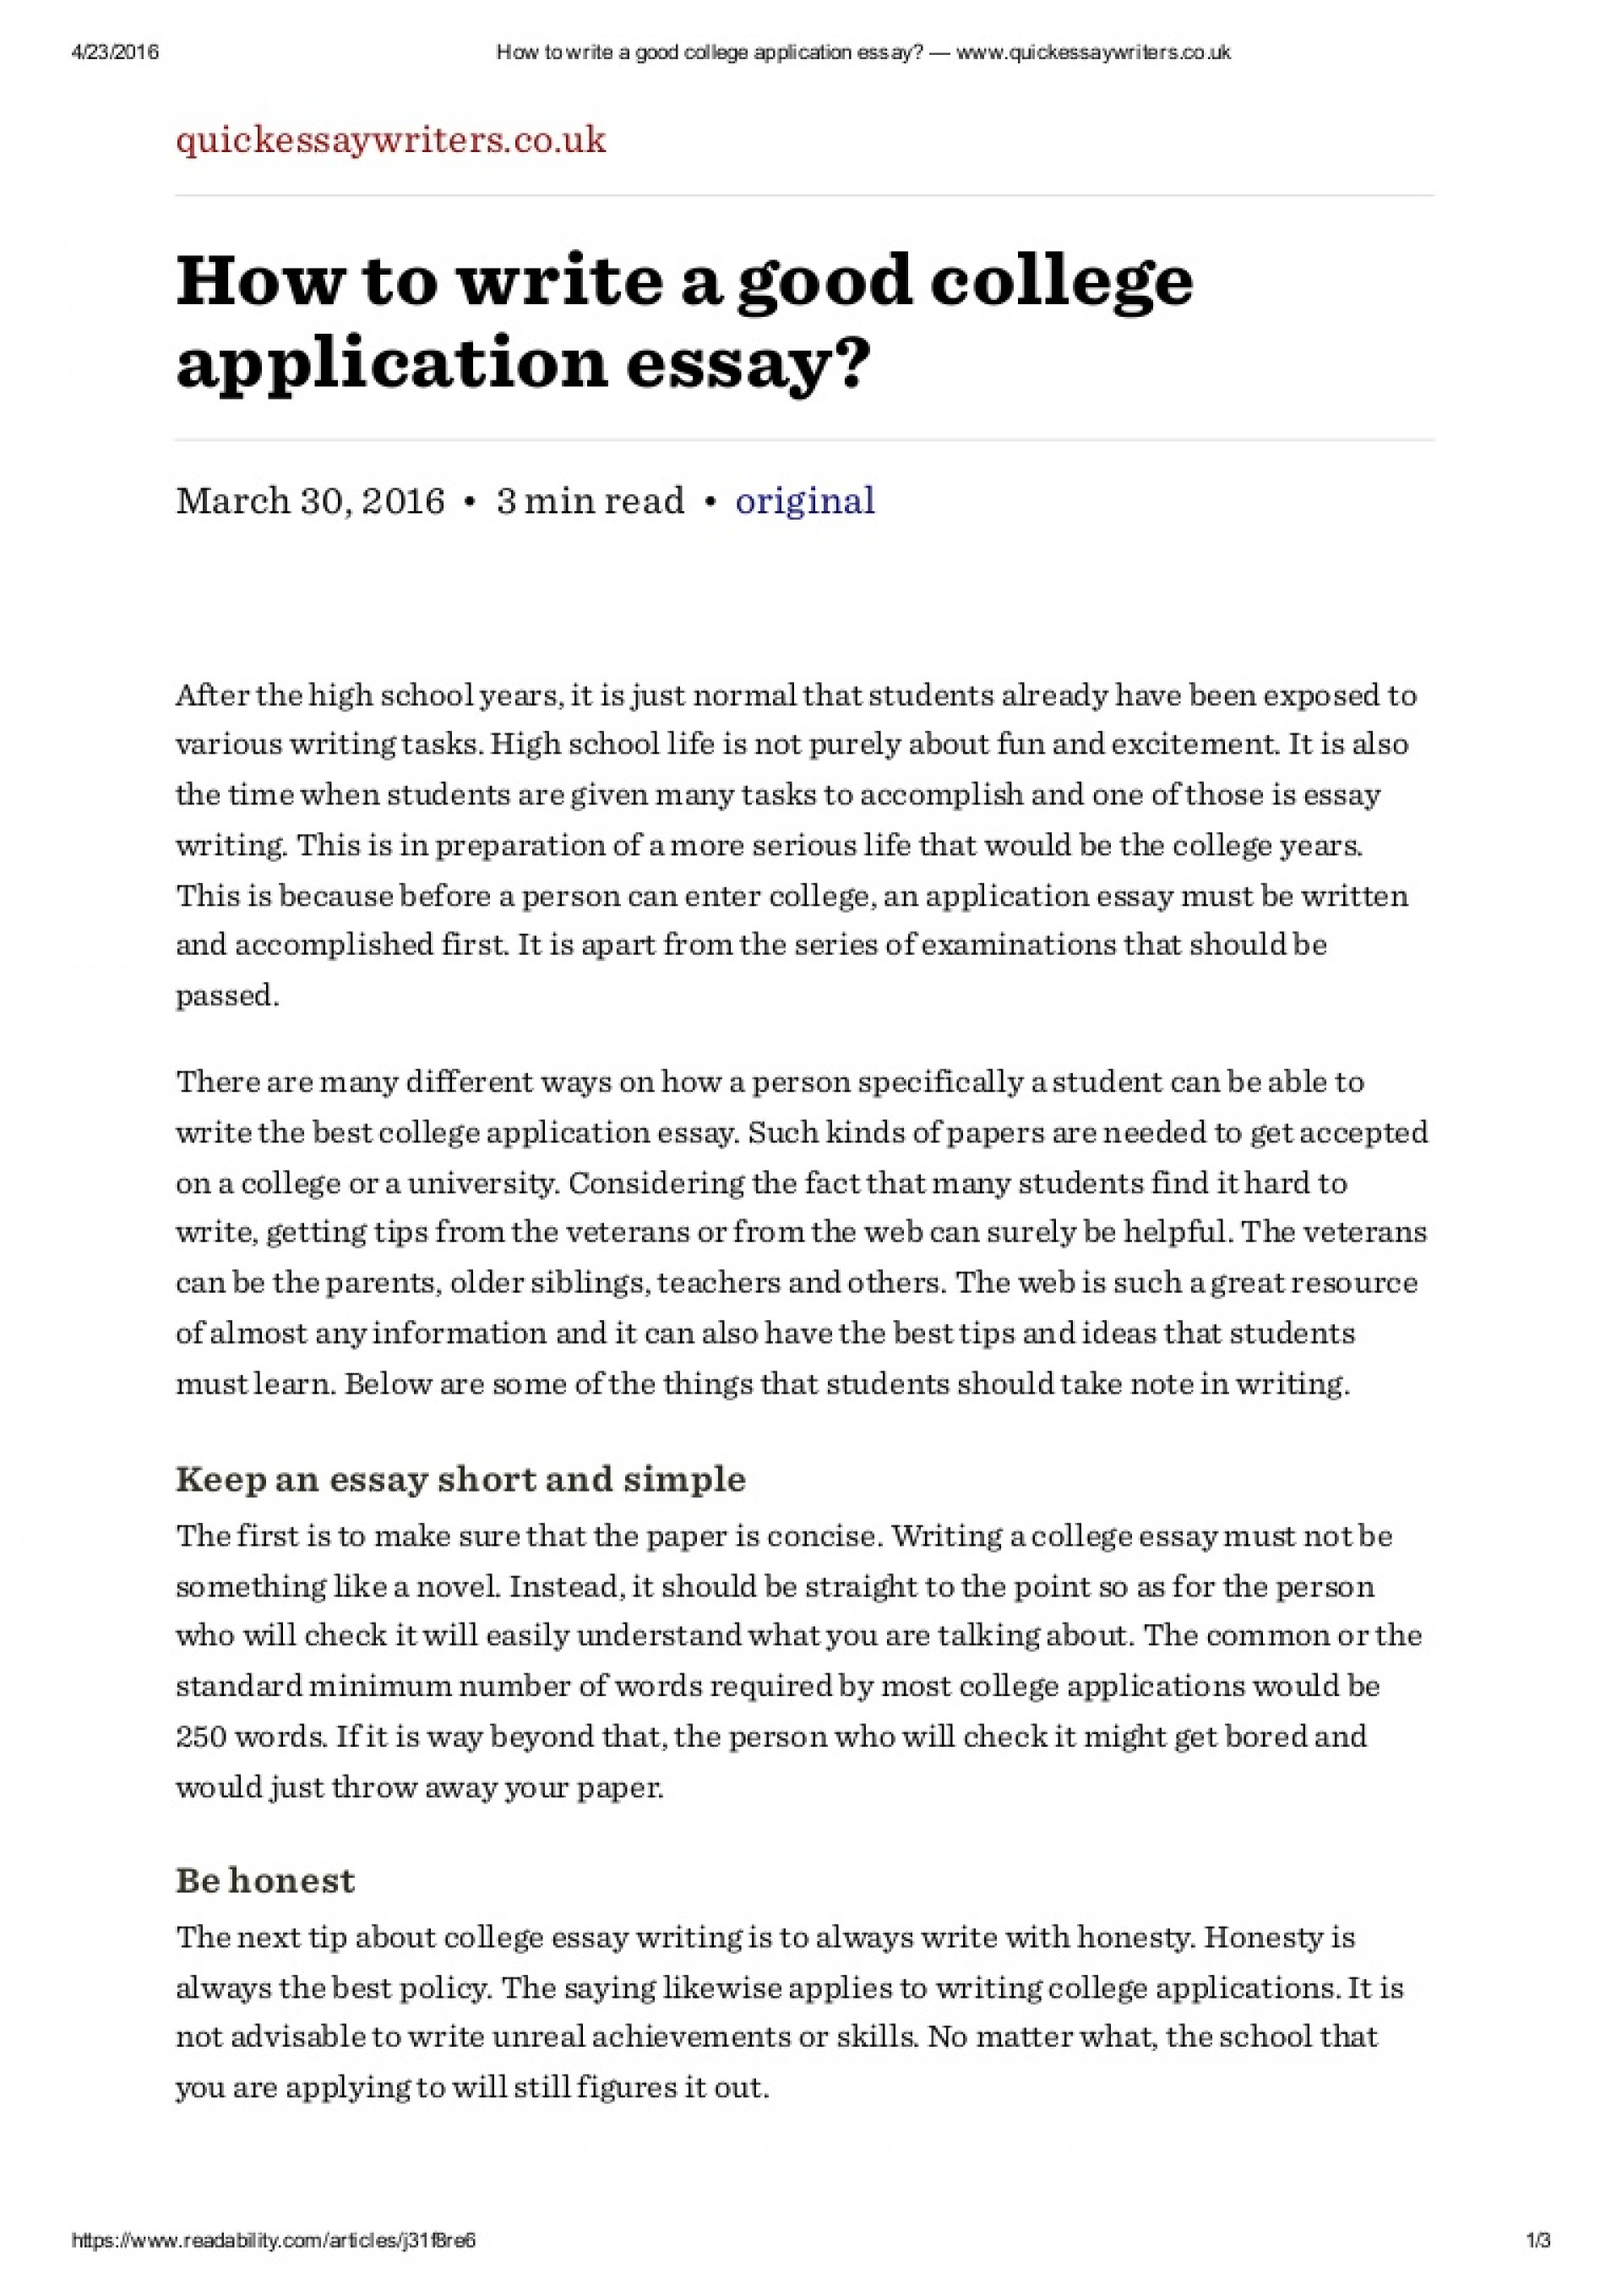 009 Essay Example College Application Howtowriteagoodcollegeapplicationessaywww Thumbnail Unbelievable Admission Writing Tips Admissions Format Heading Good Topics 1920